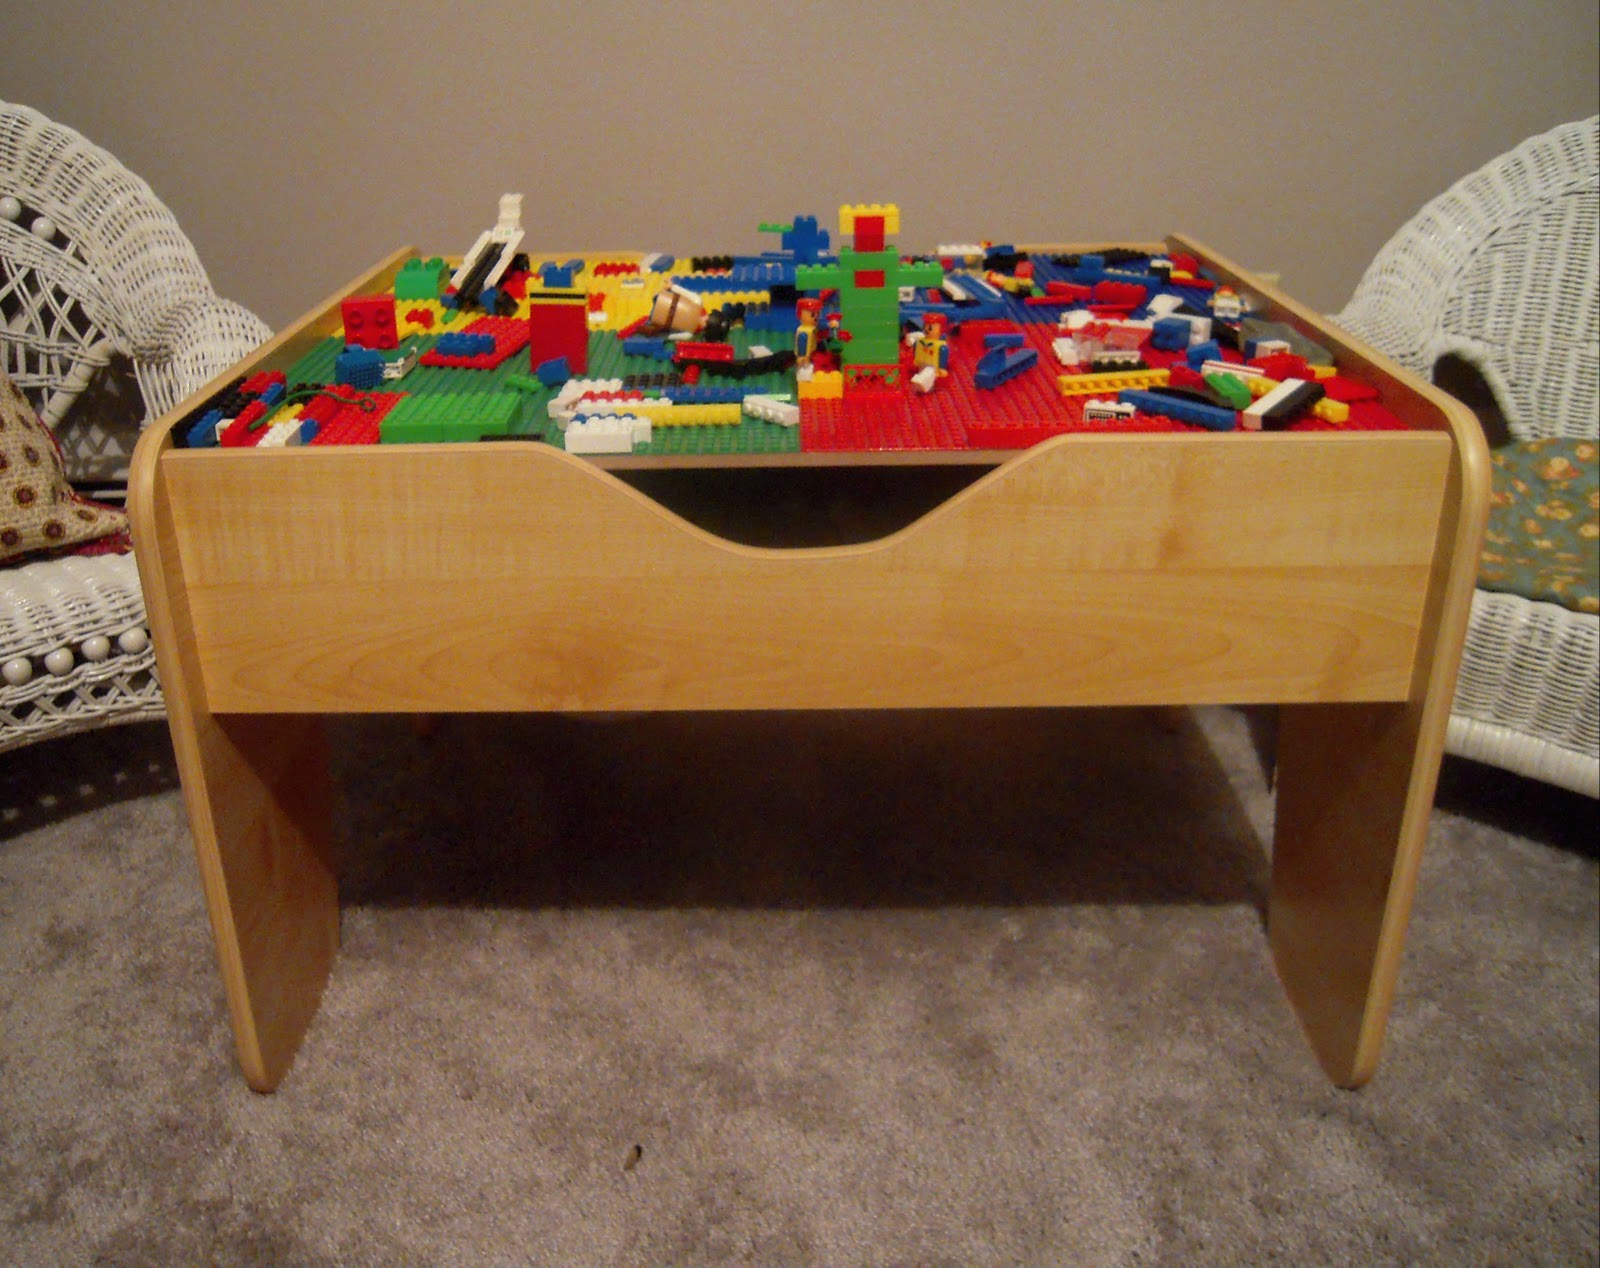 Lego Activity Table- Knowledge Games for Enhancing Brainpower